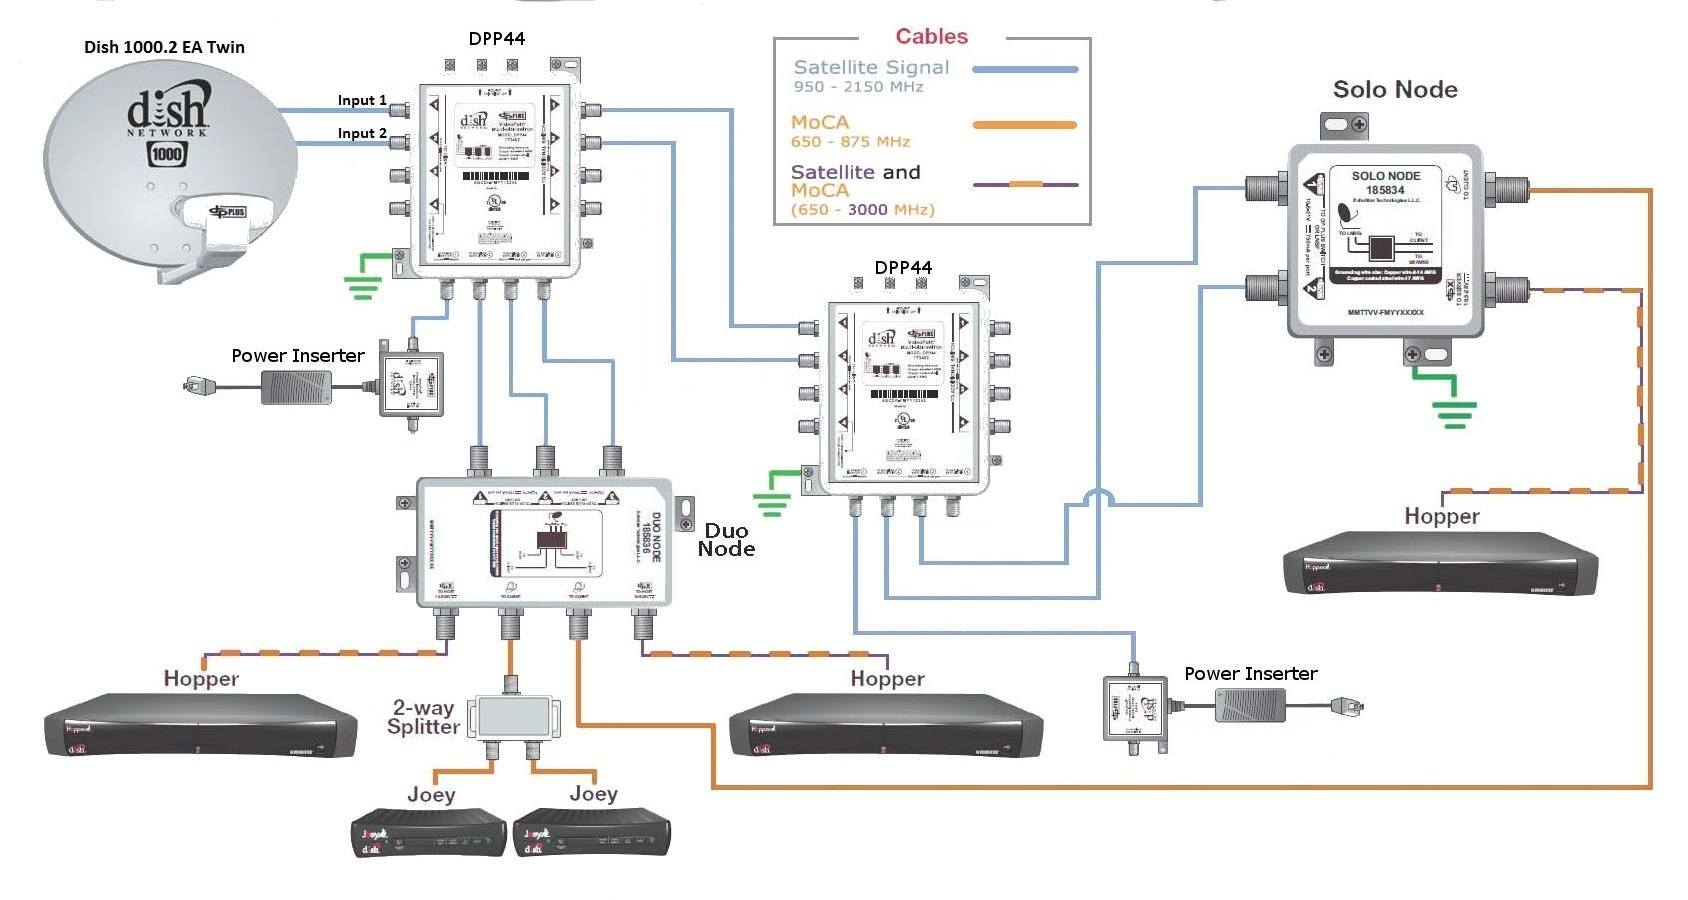 hopper wiring diagram dish network hopper installation \u2022 wiring  at cos-gaming.co